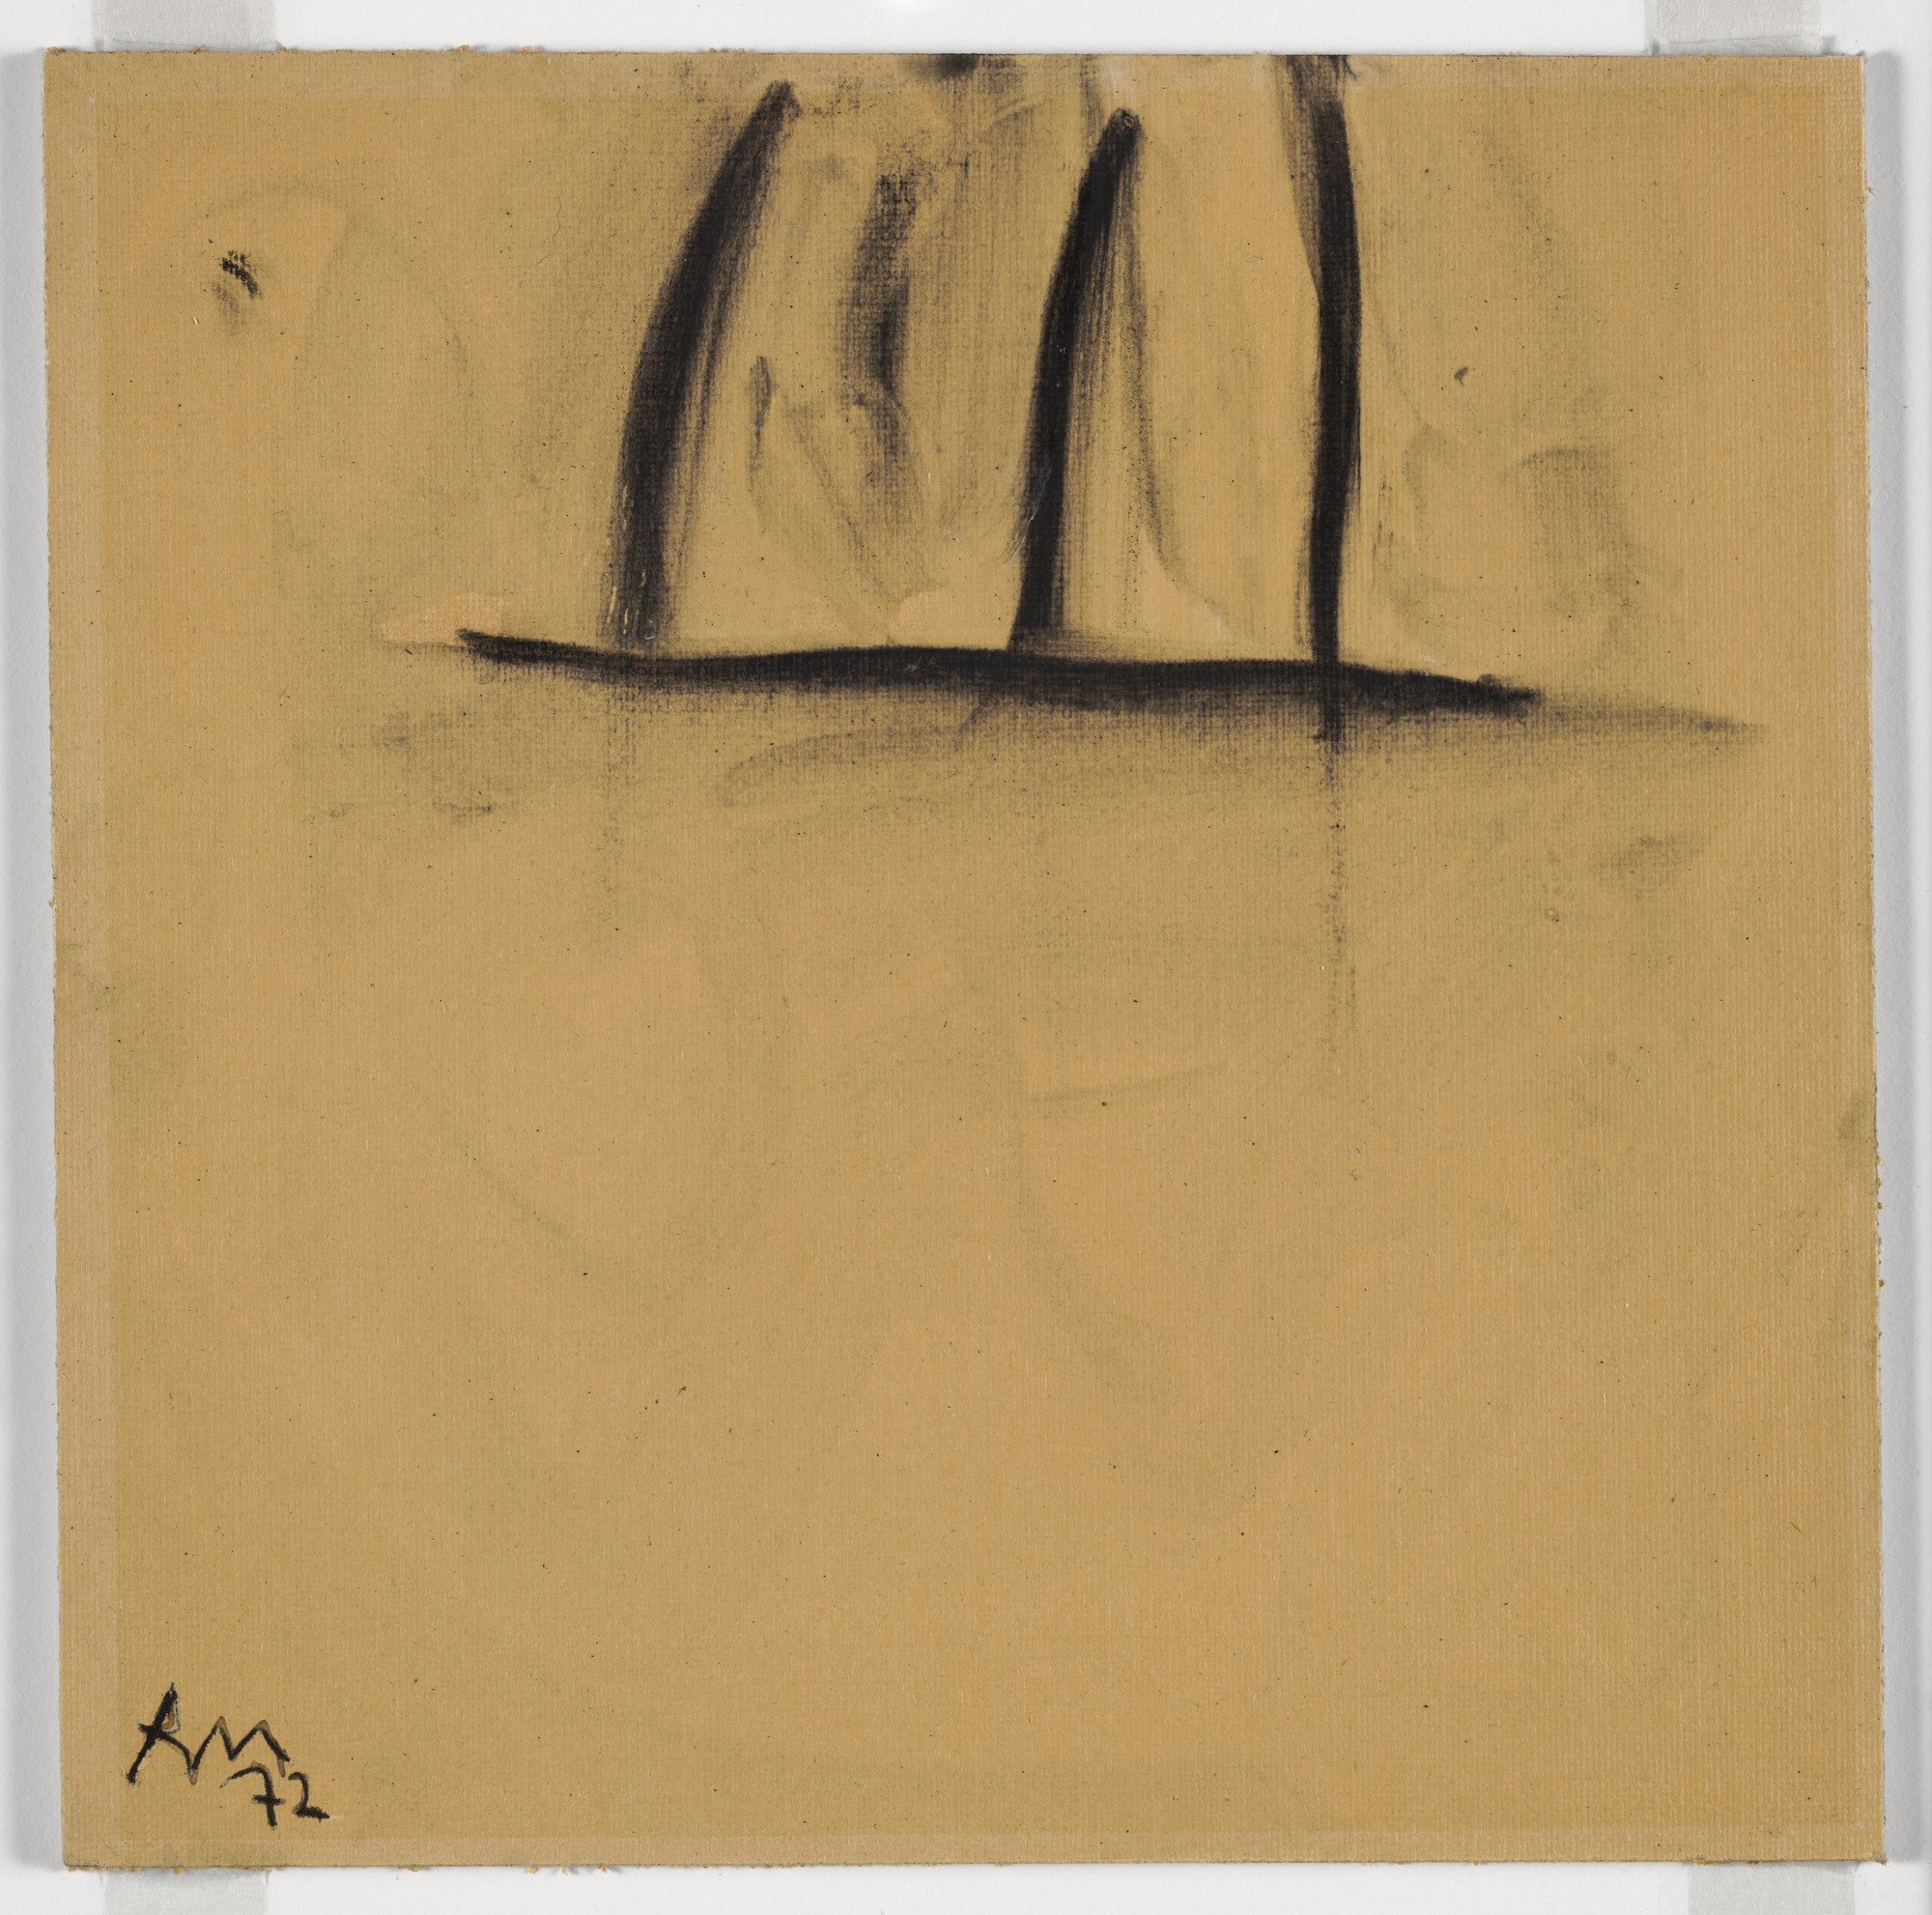 Robert Motherwell. Study for Shem the Penman #10. 1972